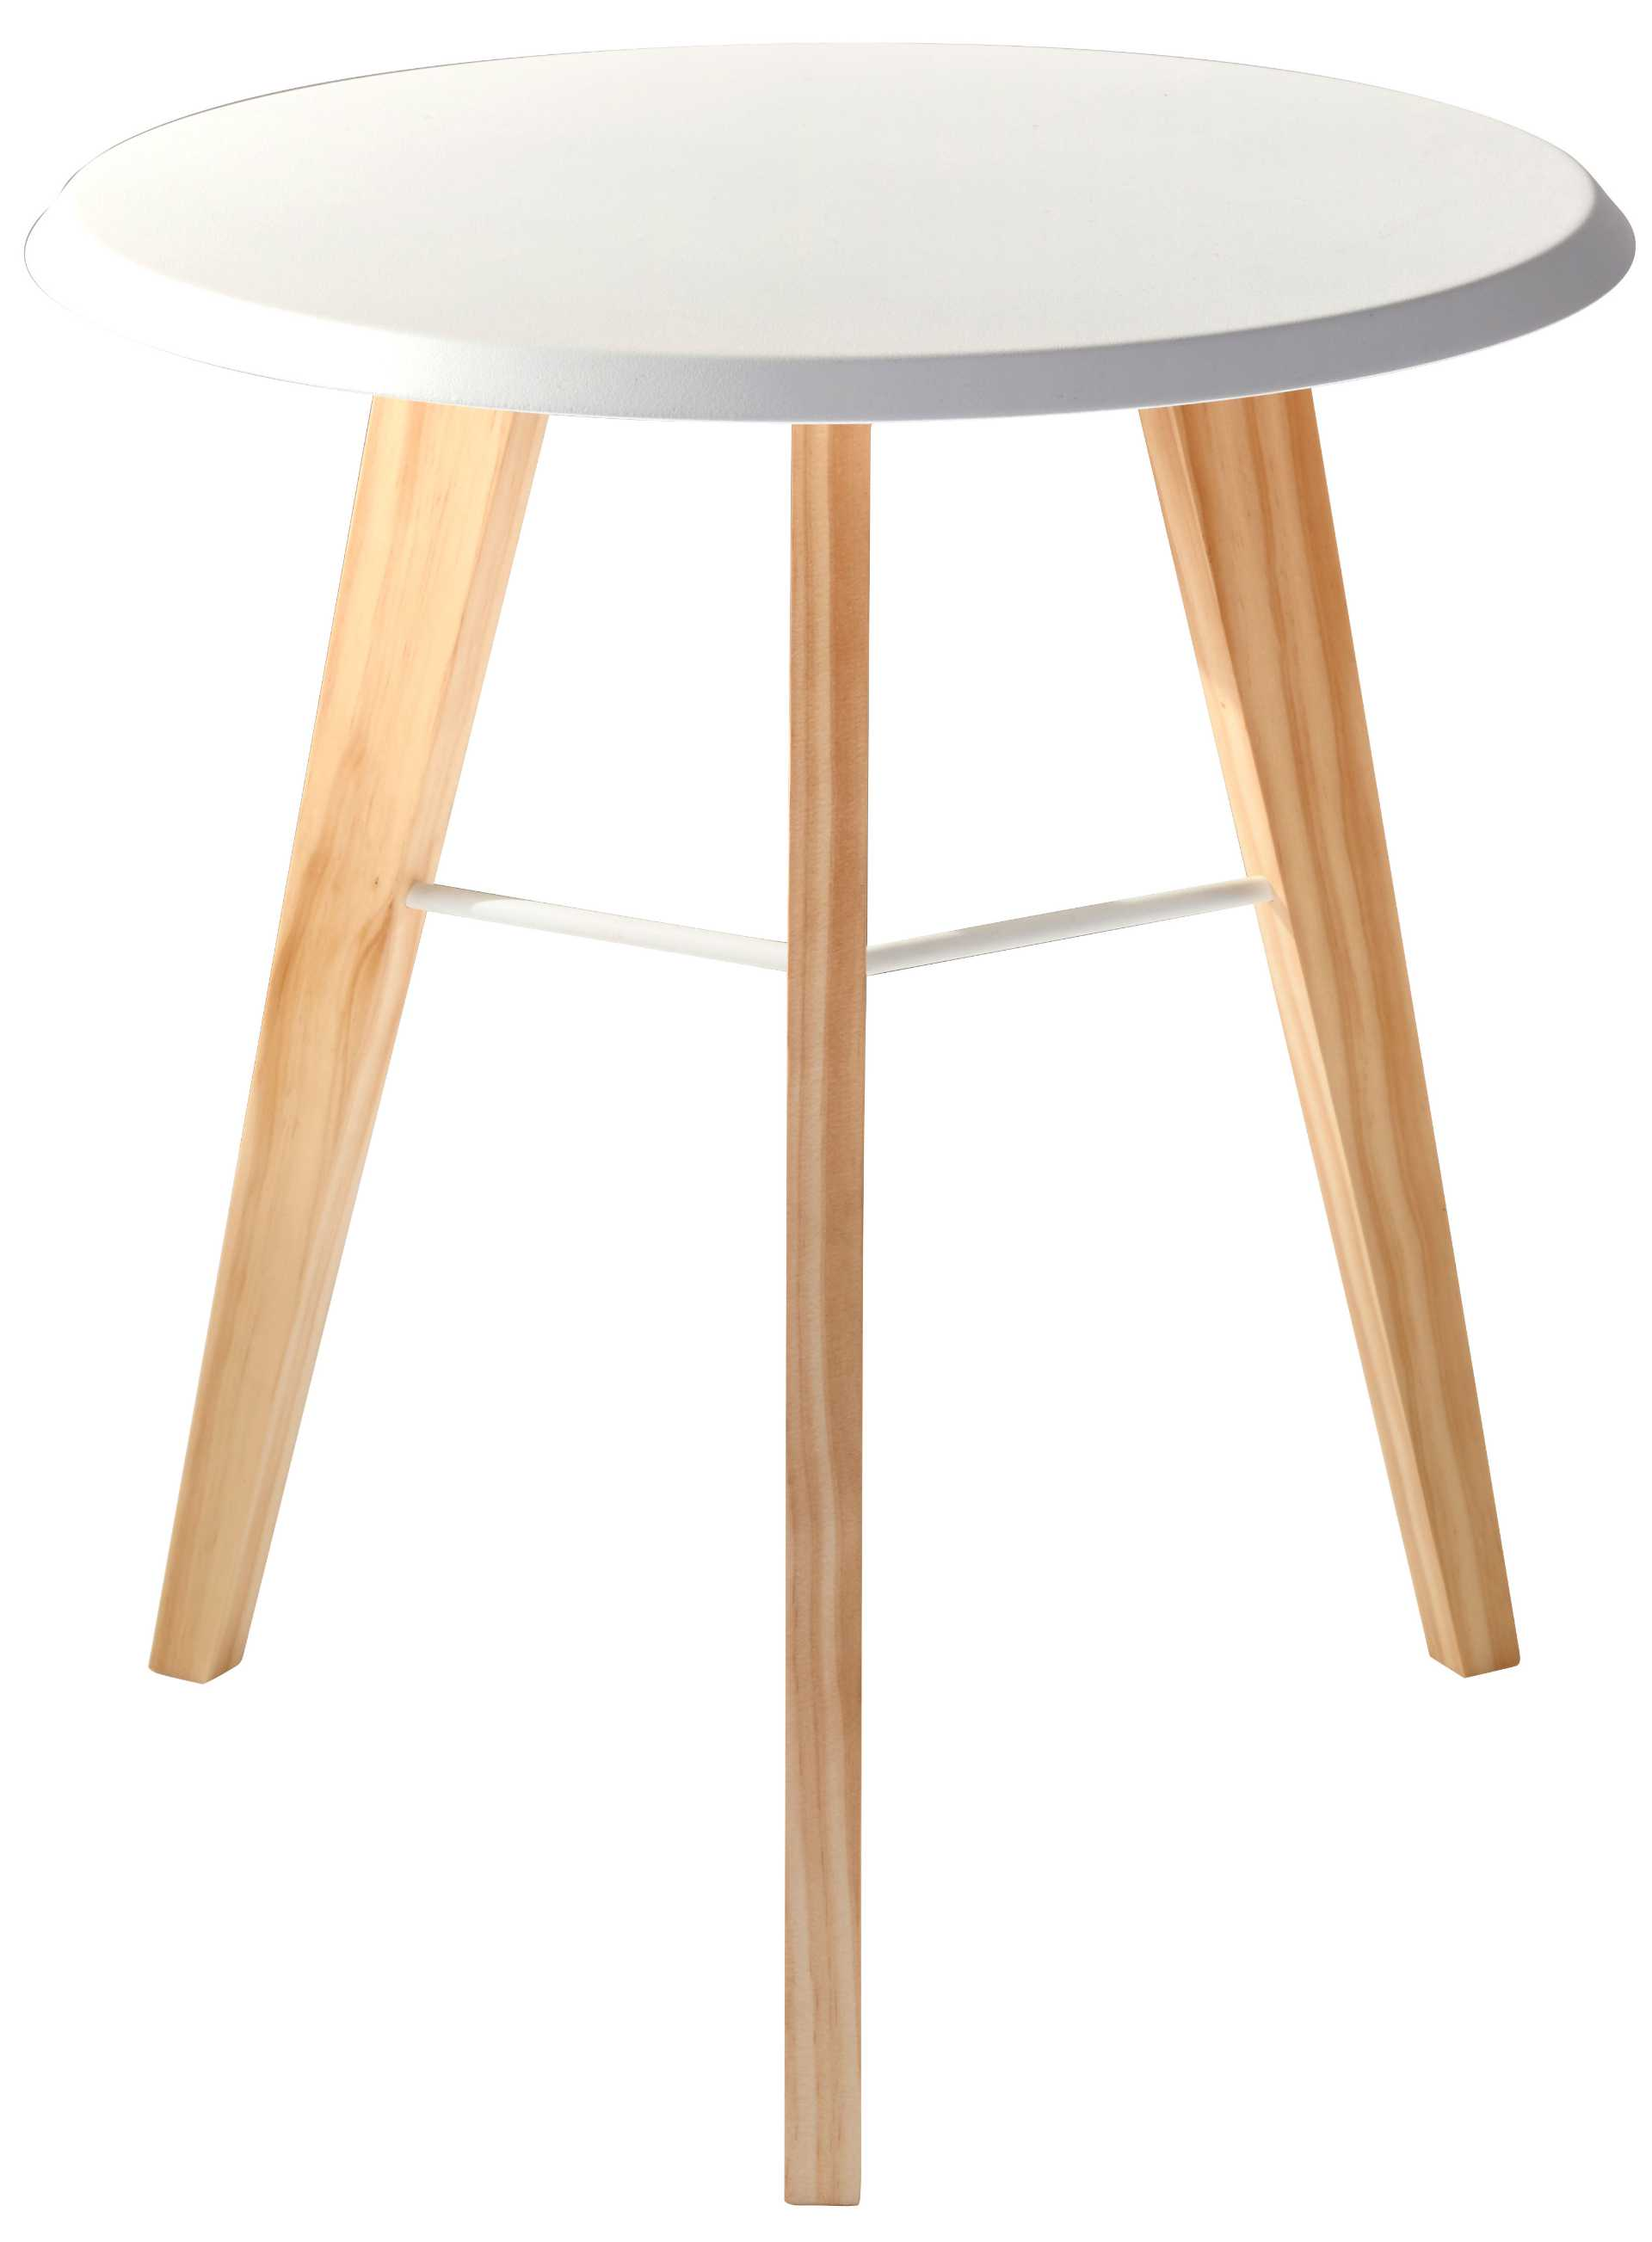 jaxon accent table white natural adesso furniture large hover zoom outdoor side stacked crystal lamp tiny bedside coffee legs wood drum with built grill dark occasional tables